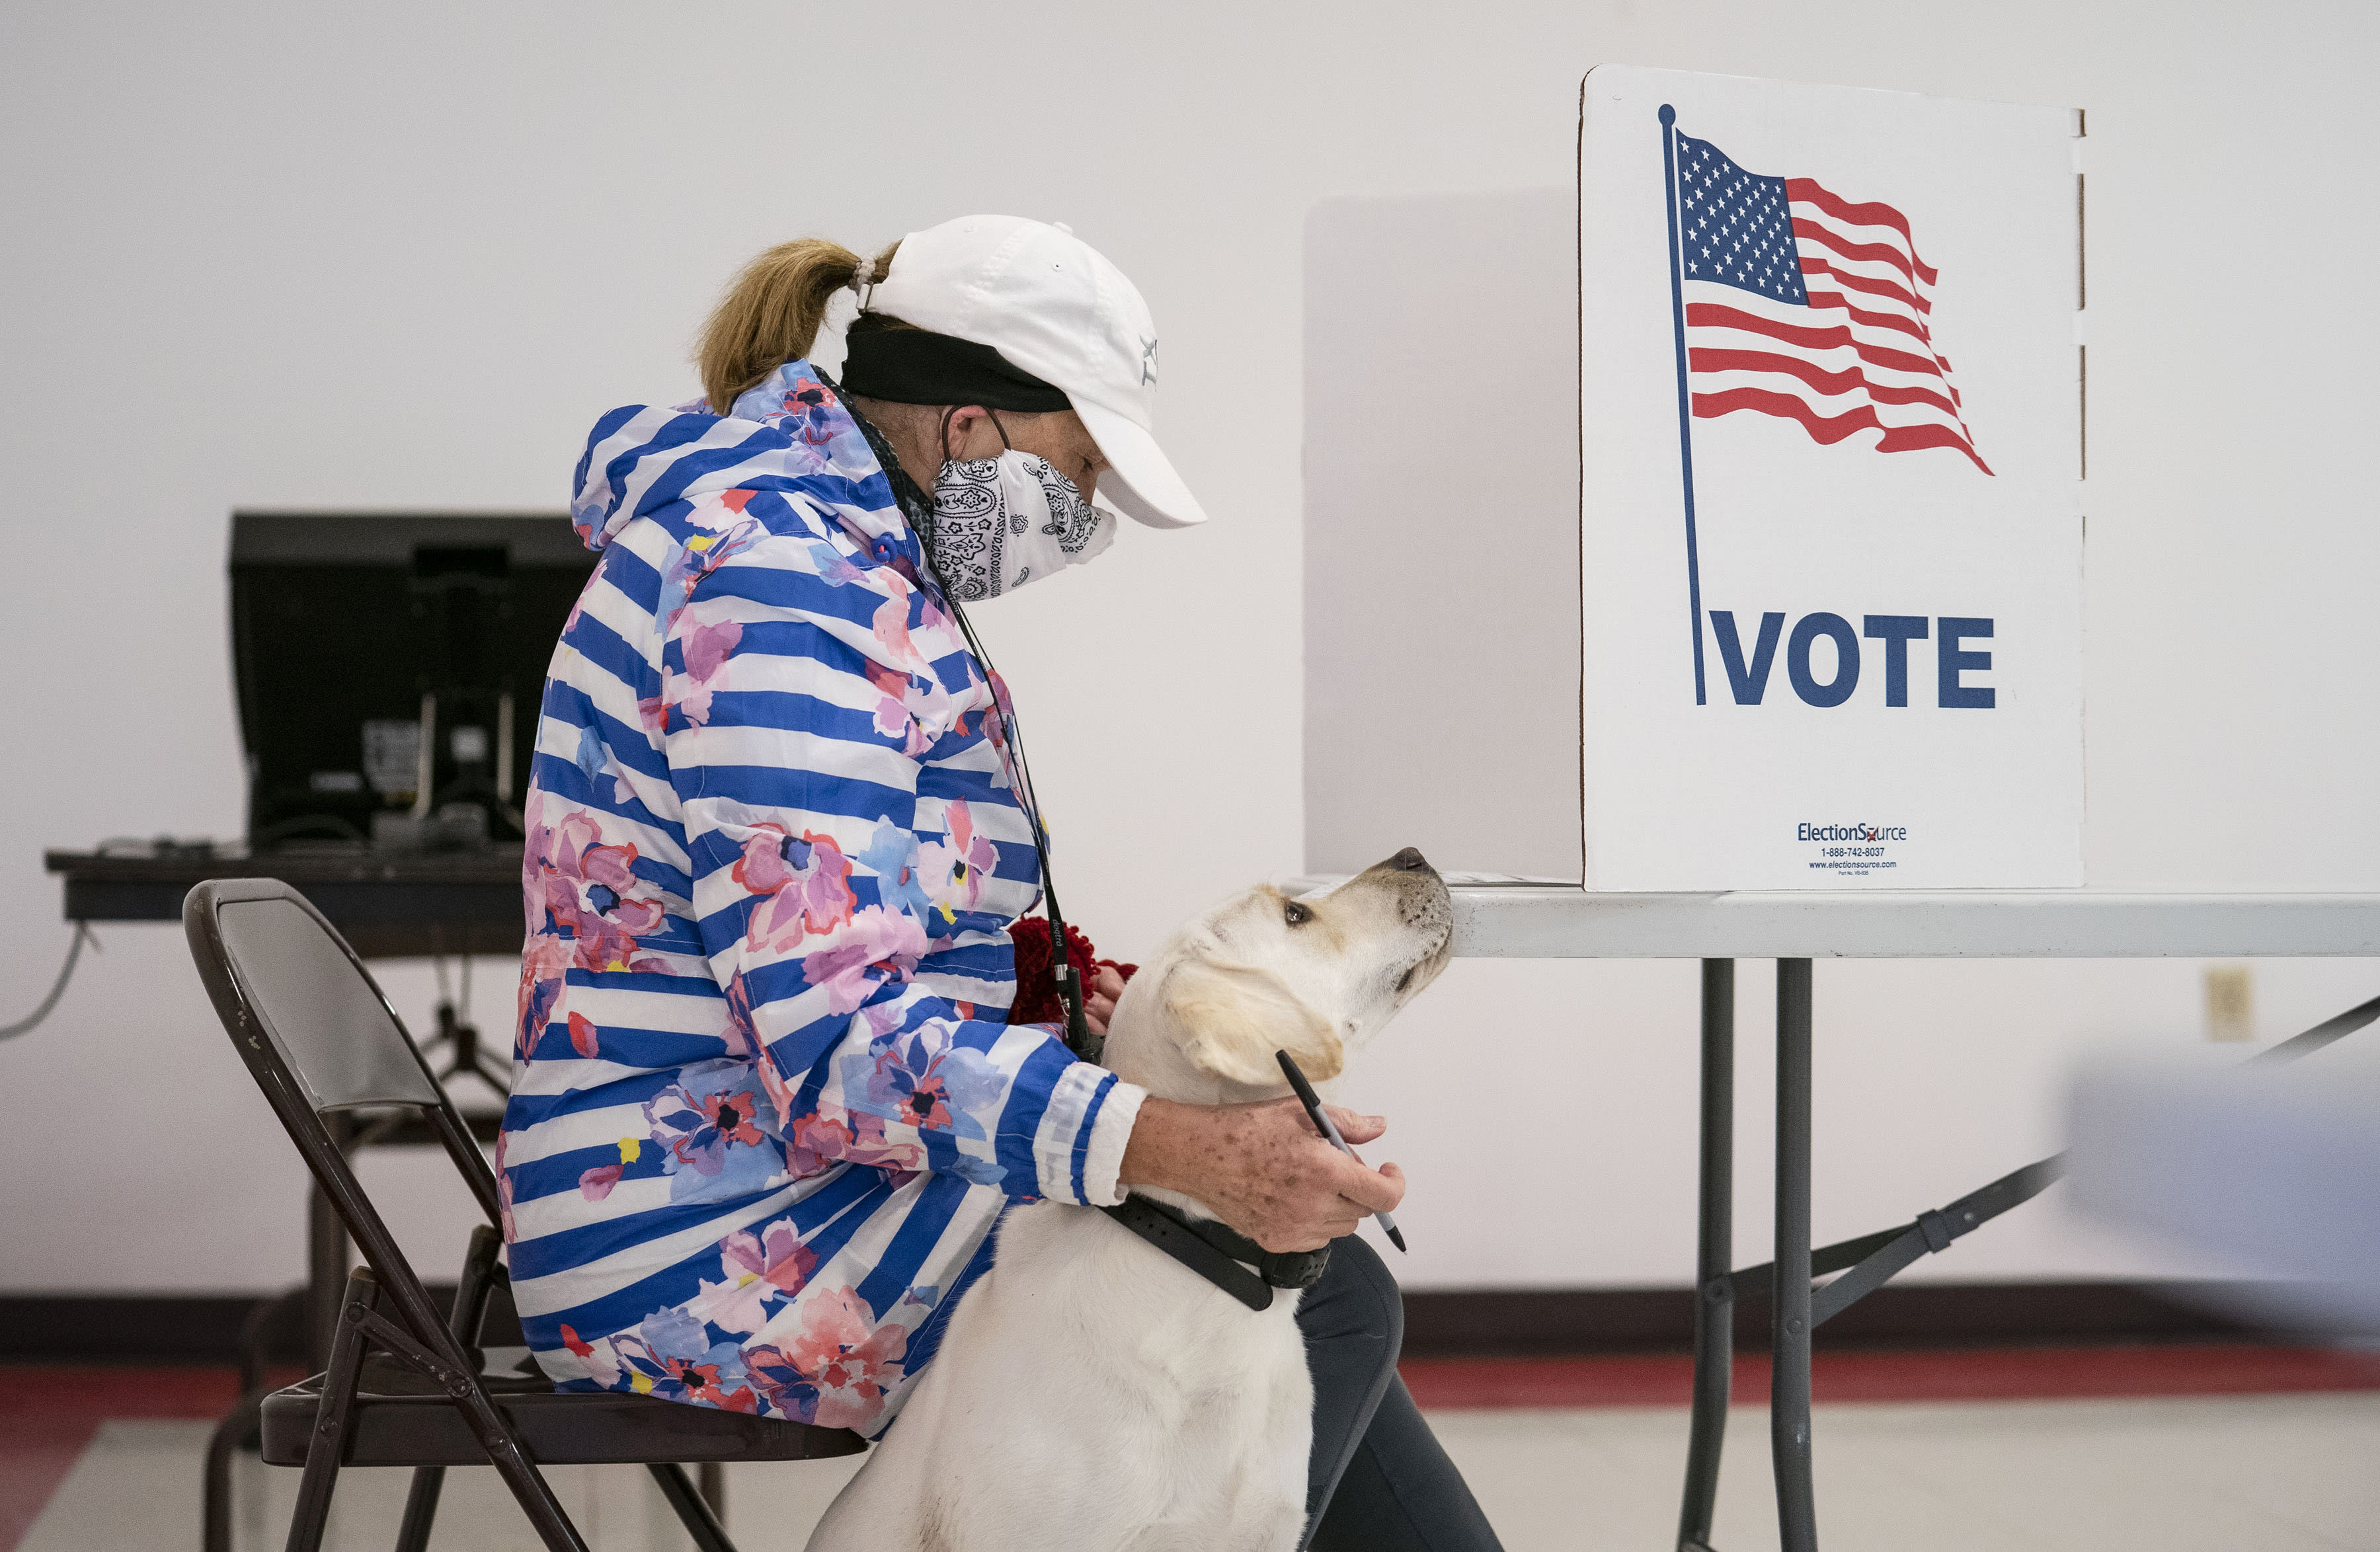 CORRECTS STATE TO WISCONSIN, NOT MINNESOTA -Catherine Anderson sits with her dog, Ivy, as she votes in the Wisconsin Primary at the Billings Park Civic Center in Superior, Wis., Tuesday, April 7, 2020. (Alex Kormann/Star Tribune via AP)